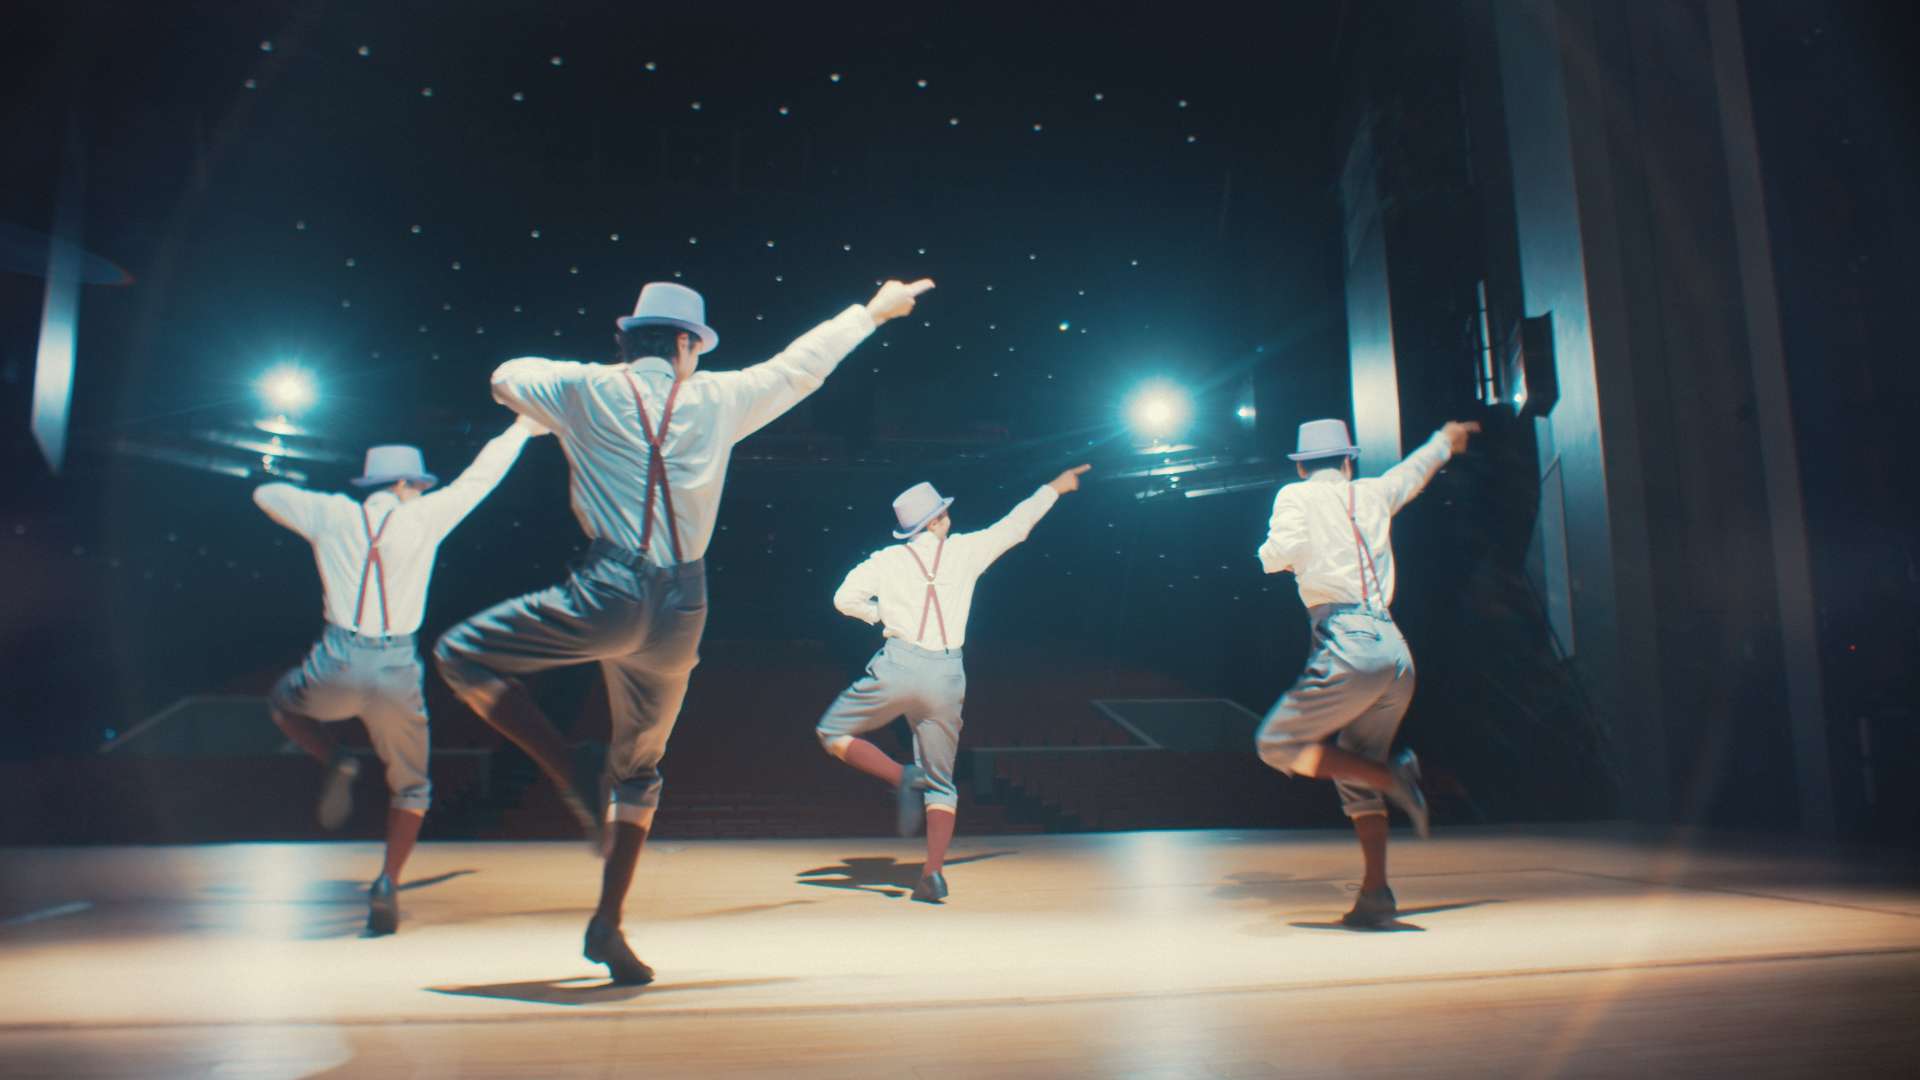 s**t kingz「I'll be there」